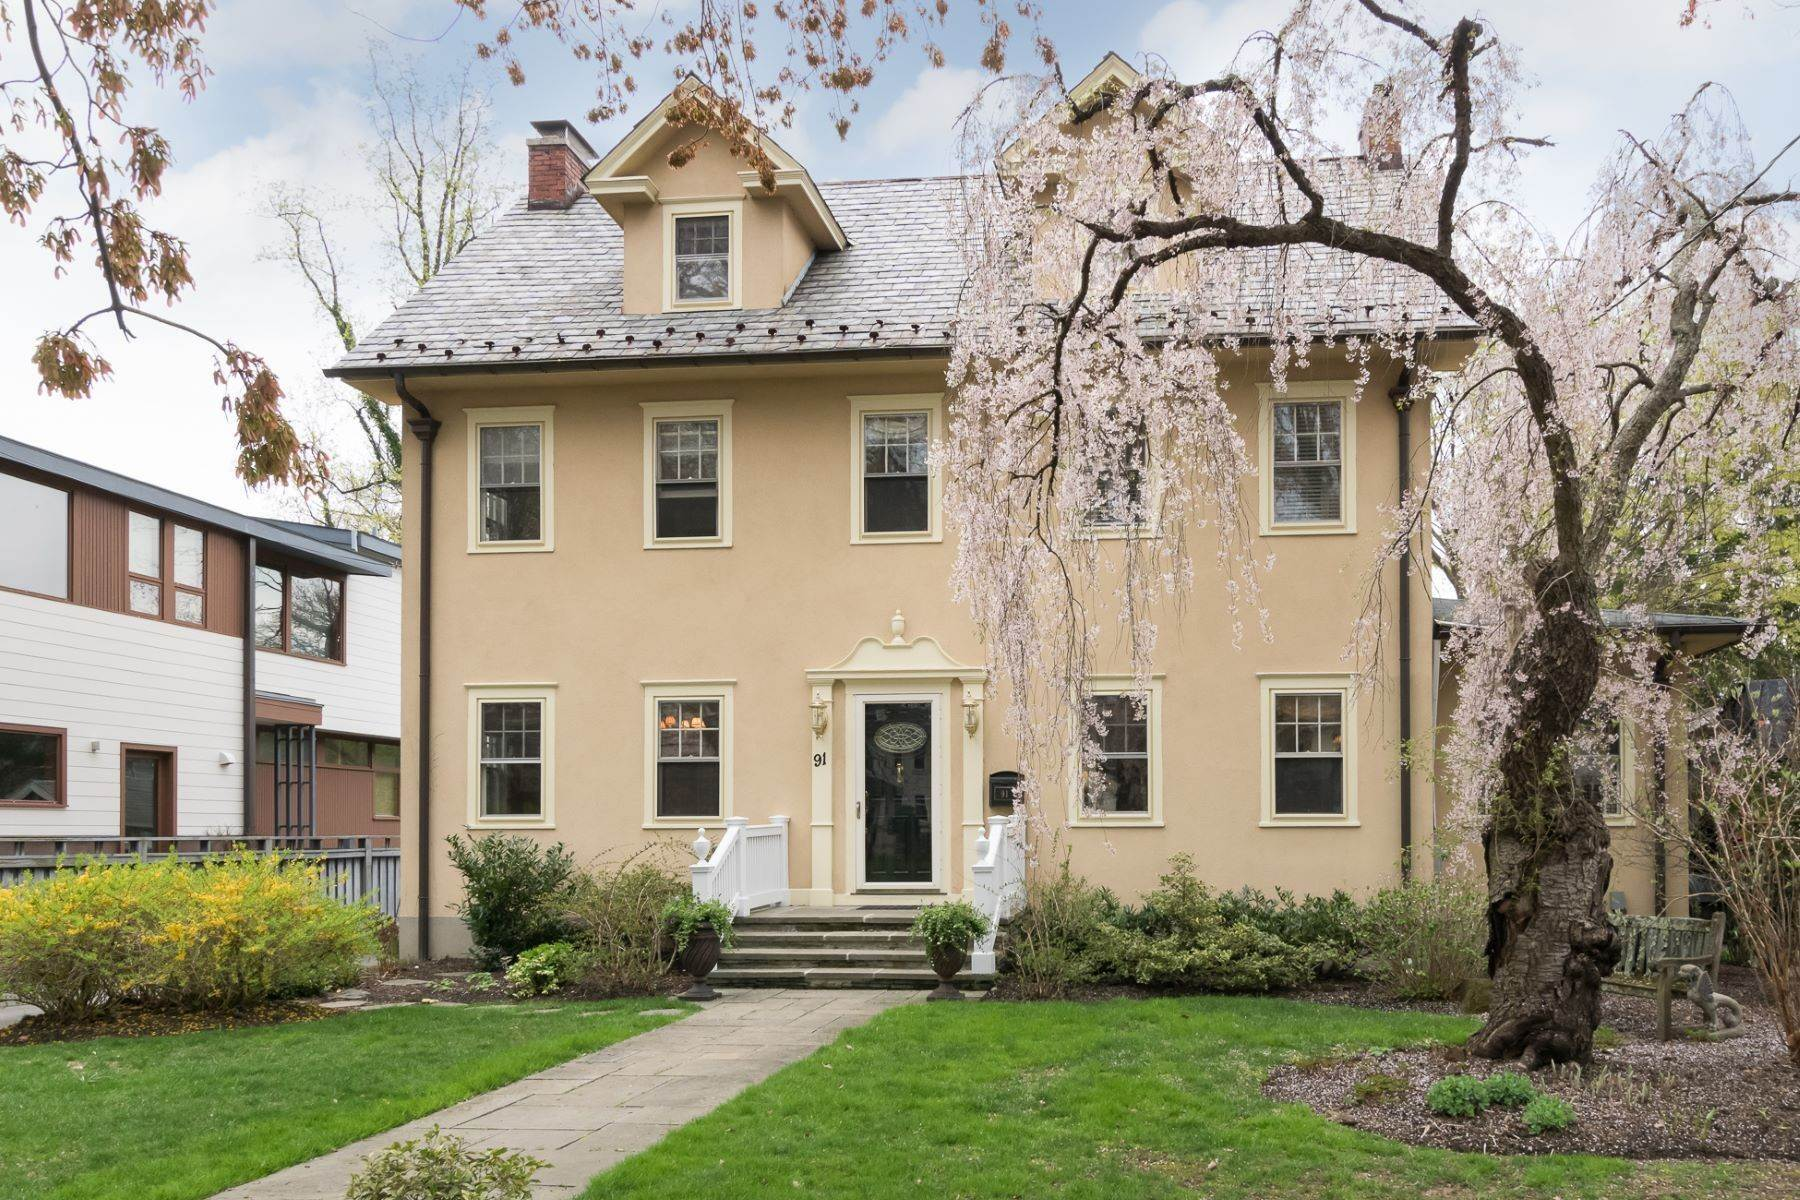 Single Family Homes for Sale at In-Town Beauty Brimming With Delightful Character 91 Moore Street, Princeton, New Jersey 08540 United States